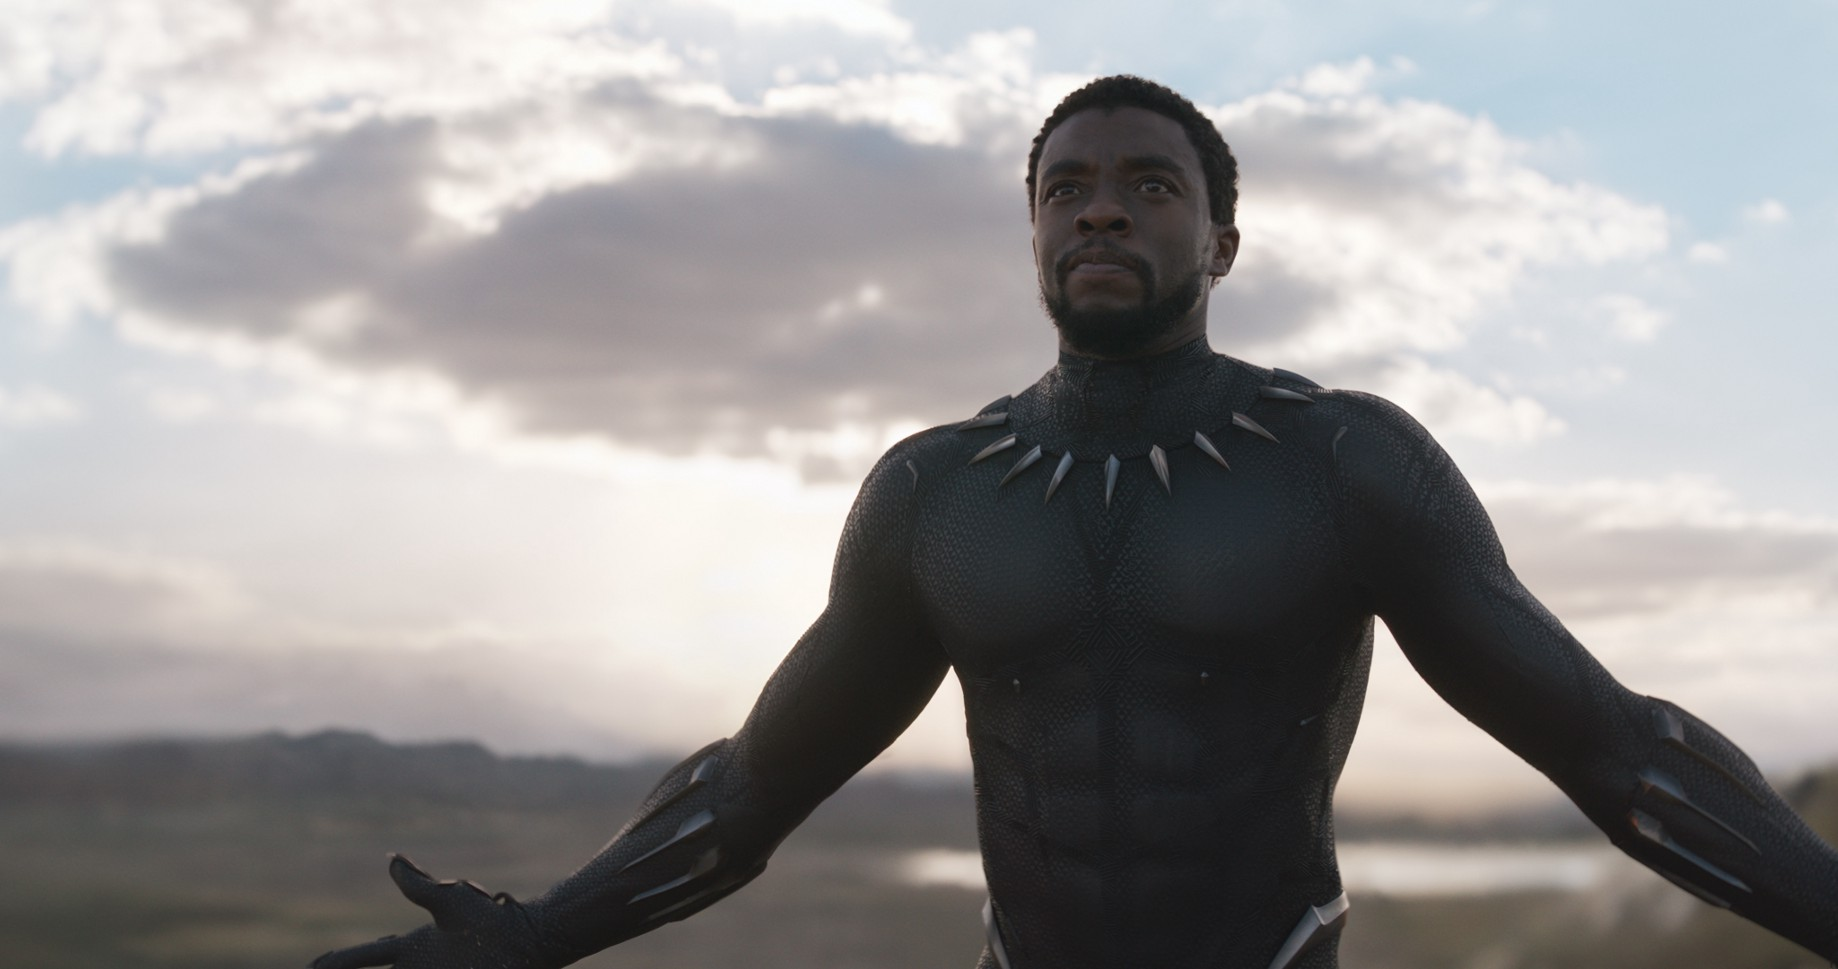 Black Panther: a story of tradition and clashing ideologies